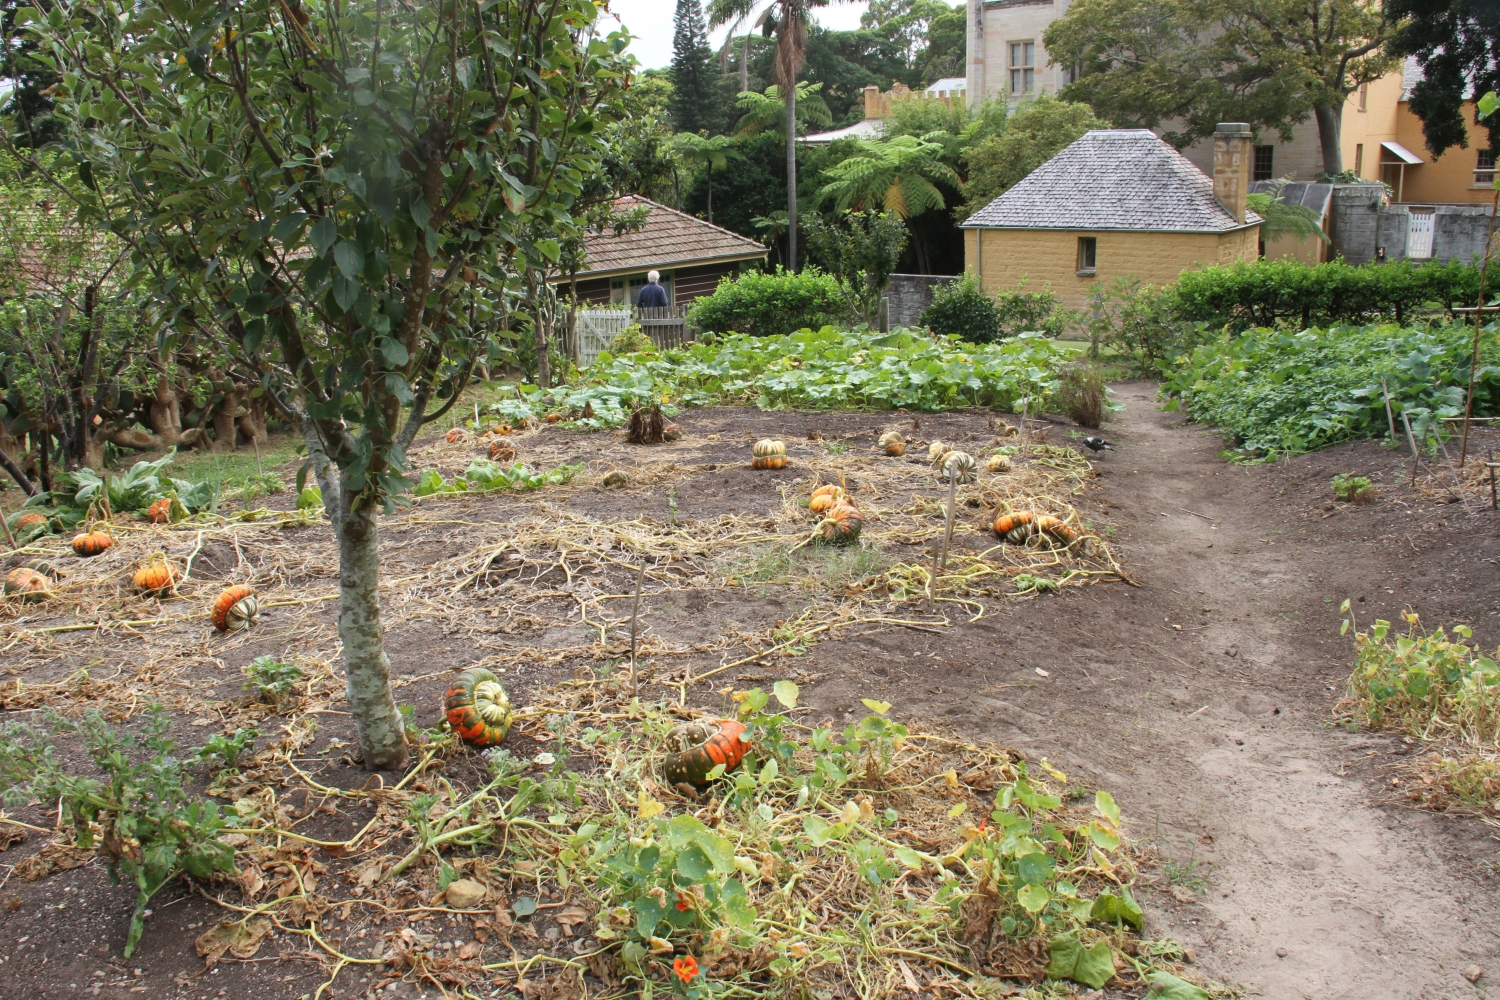 Orange and green pumpkins in the kitchen garden